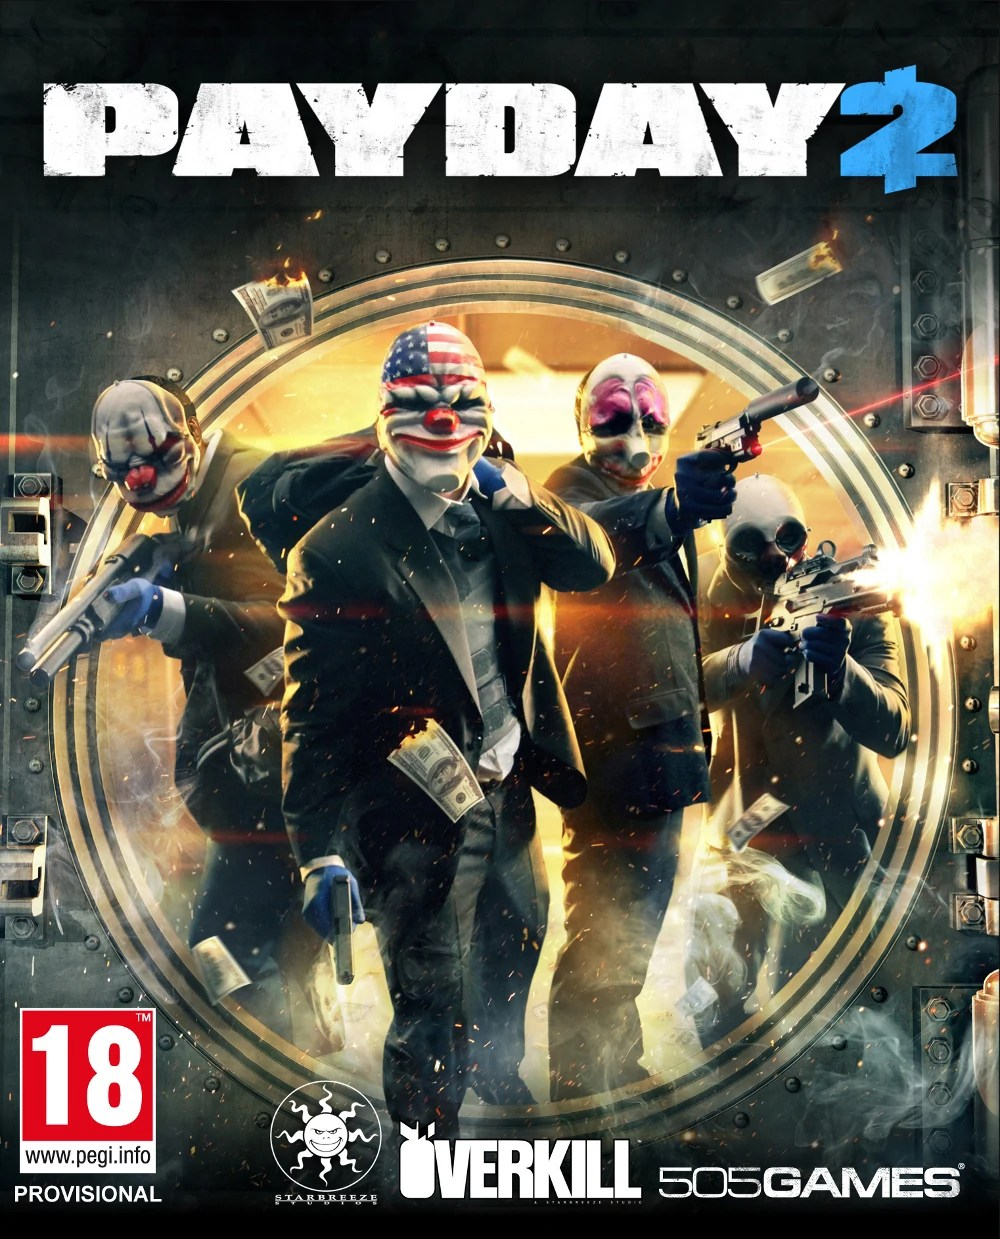 PAYDAY 2 Payday Wiki